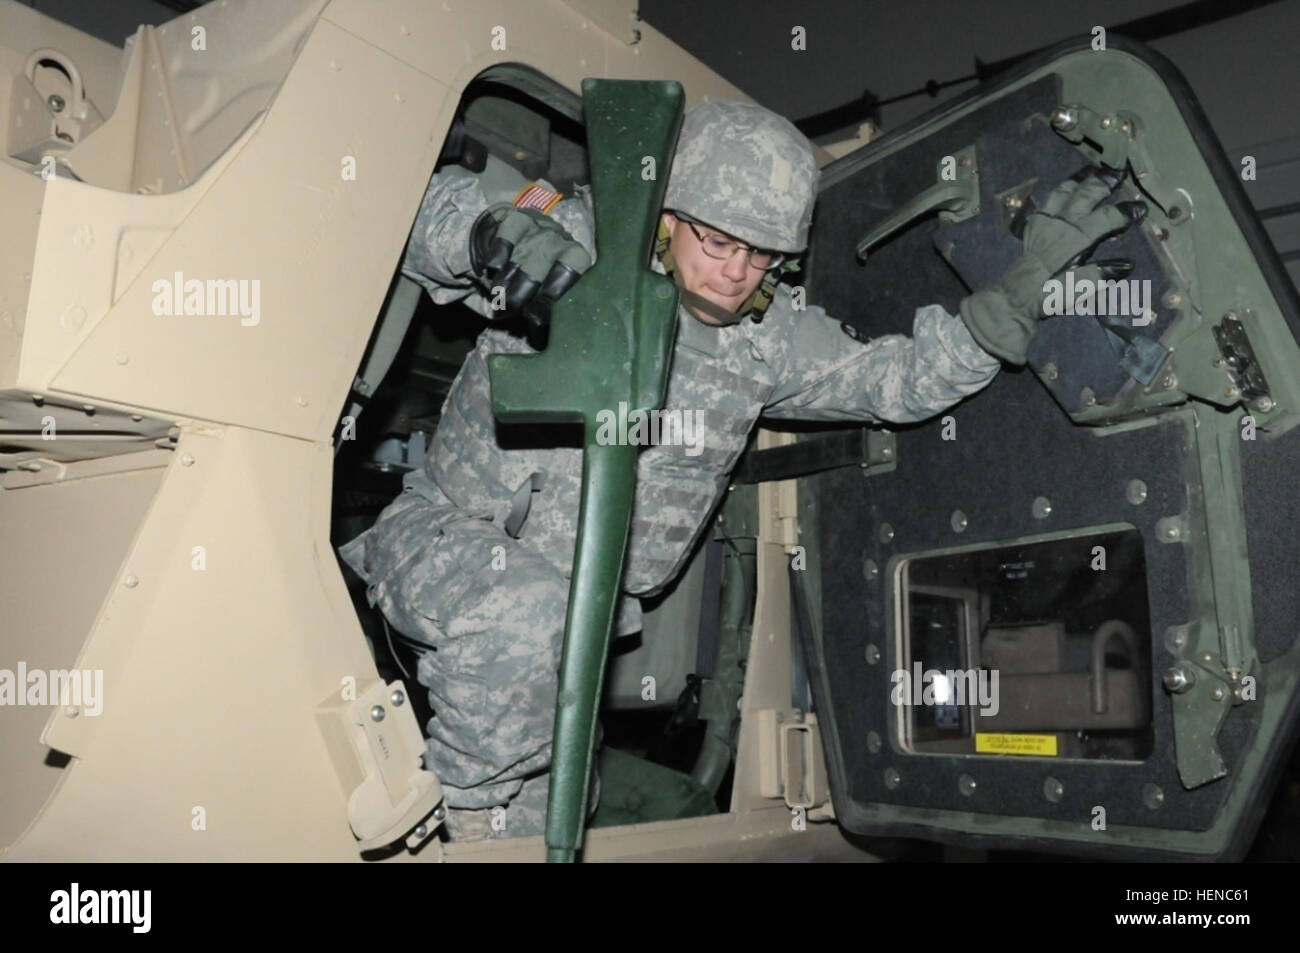 Spc. Robert R. Ortiz Jr., a supply specialist with the Army Reserve Medical Commands in Pinellas Park, Fla., exits - Stock Image